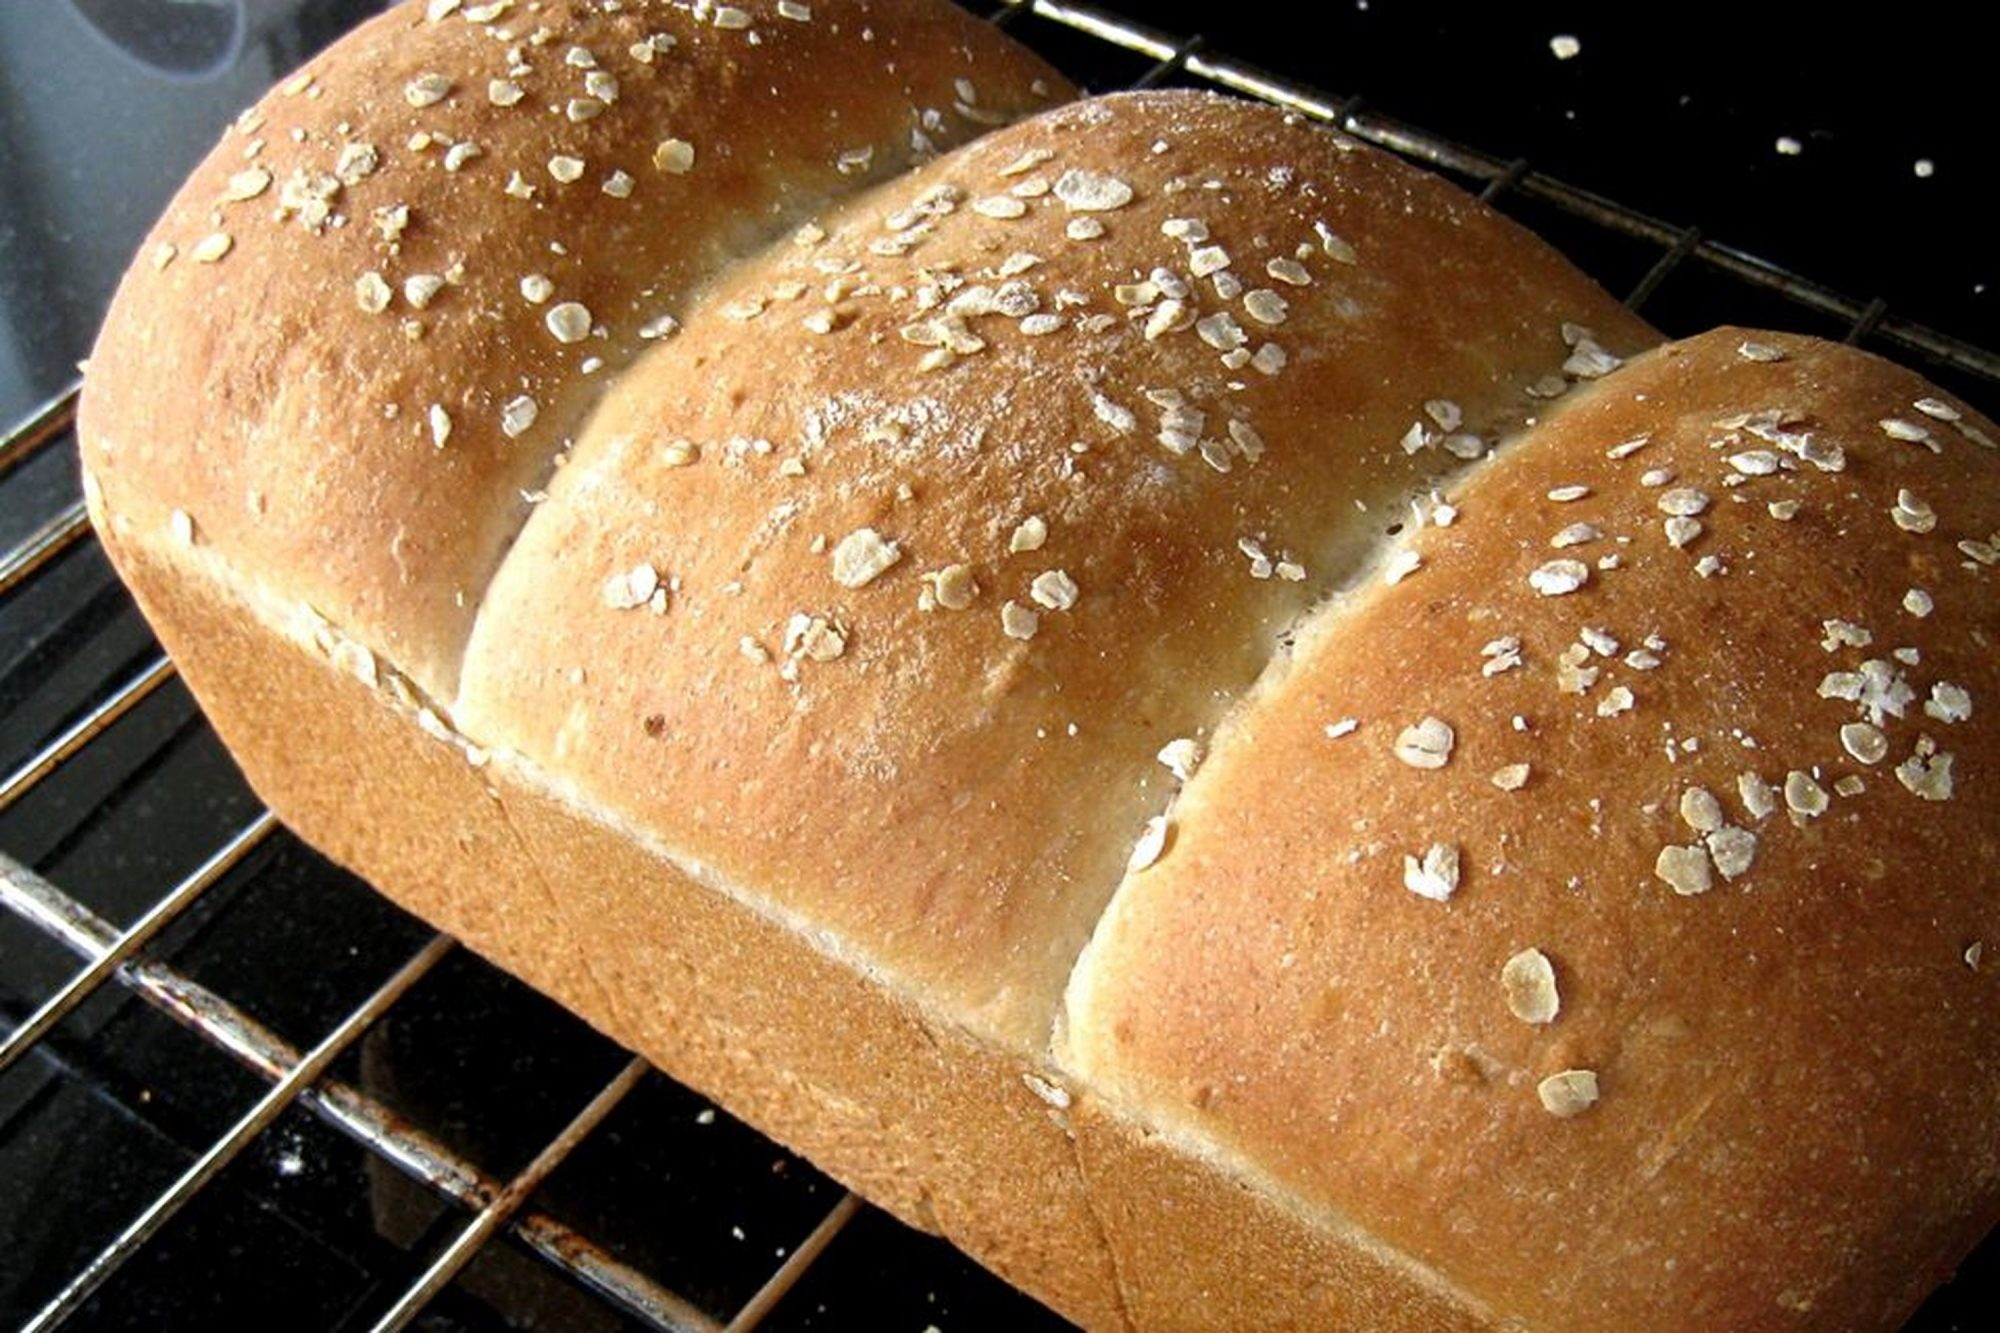 Light Oat Bread with delicate oatmeal topping on cooling rack